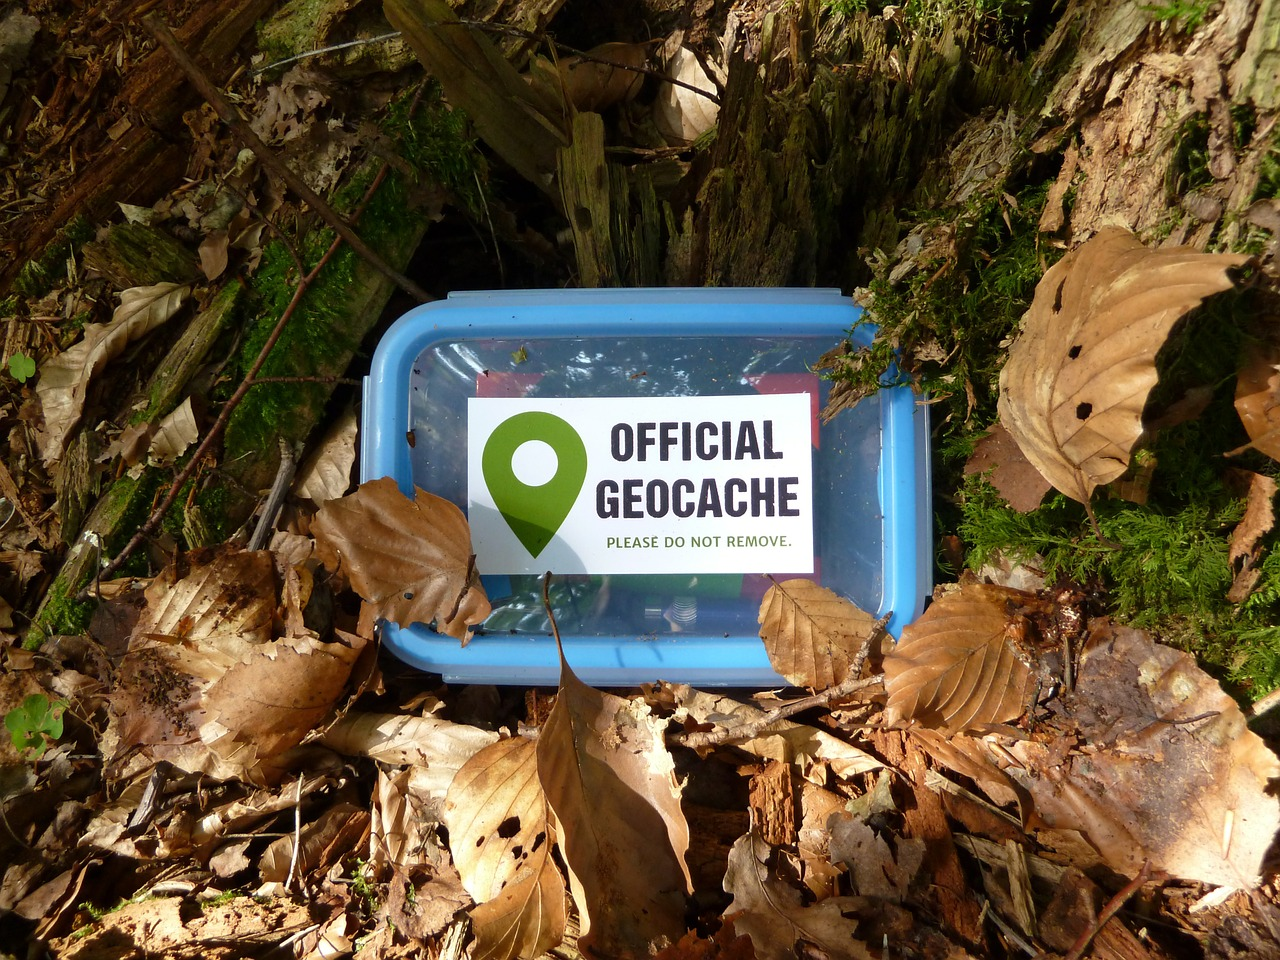 Geocaching at the Big South Fork National River & Recreation Area